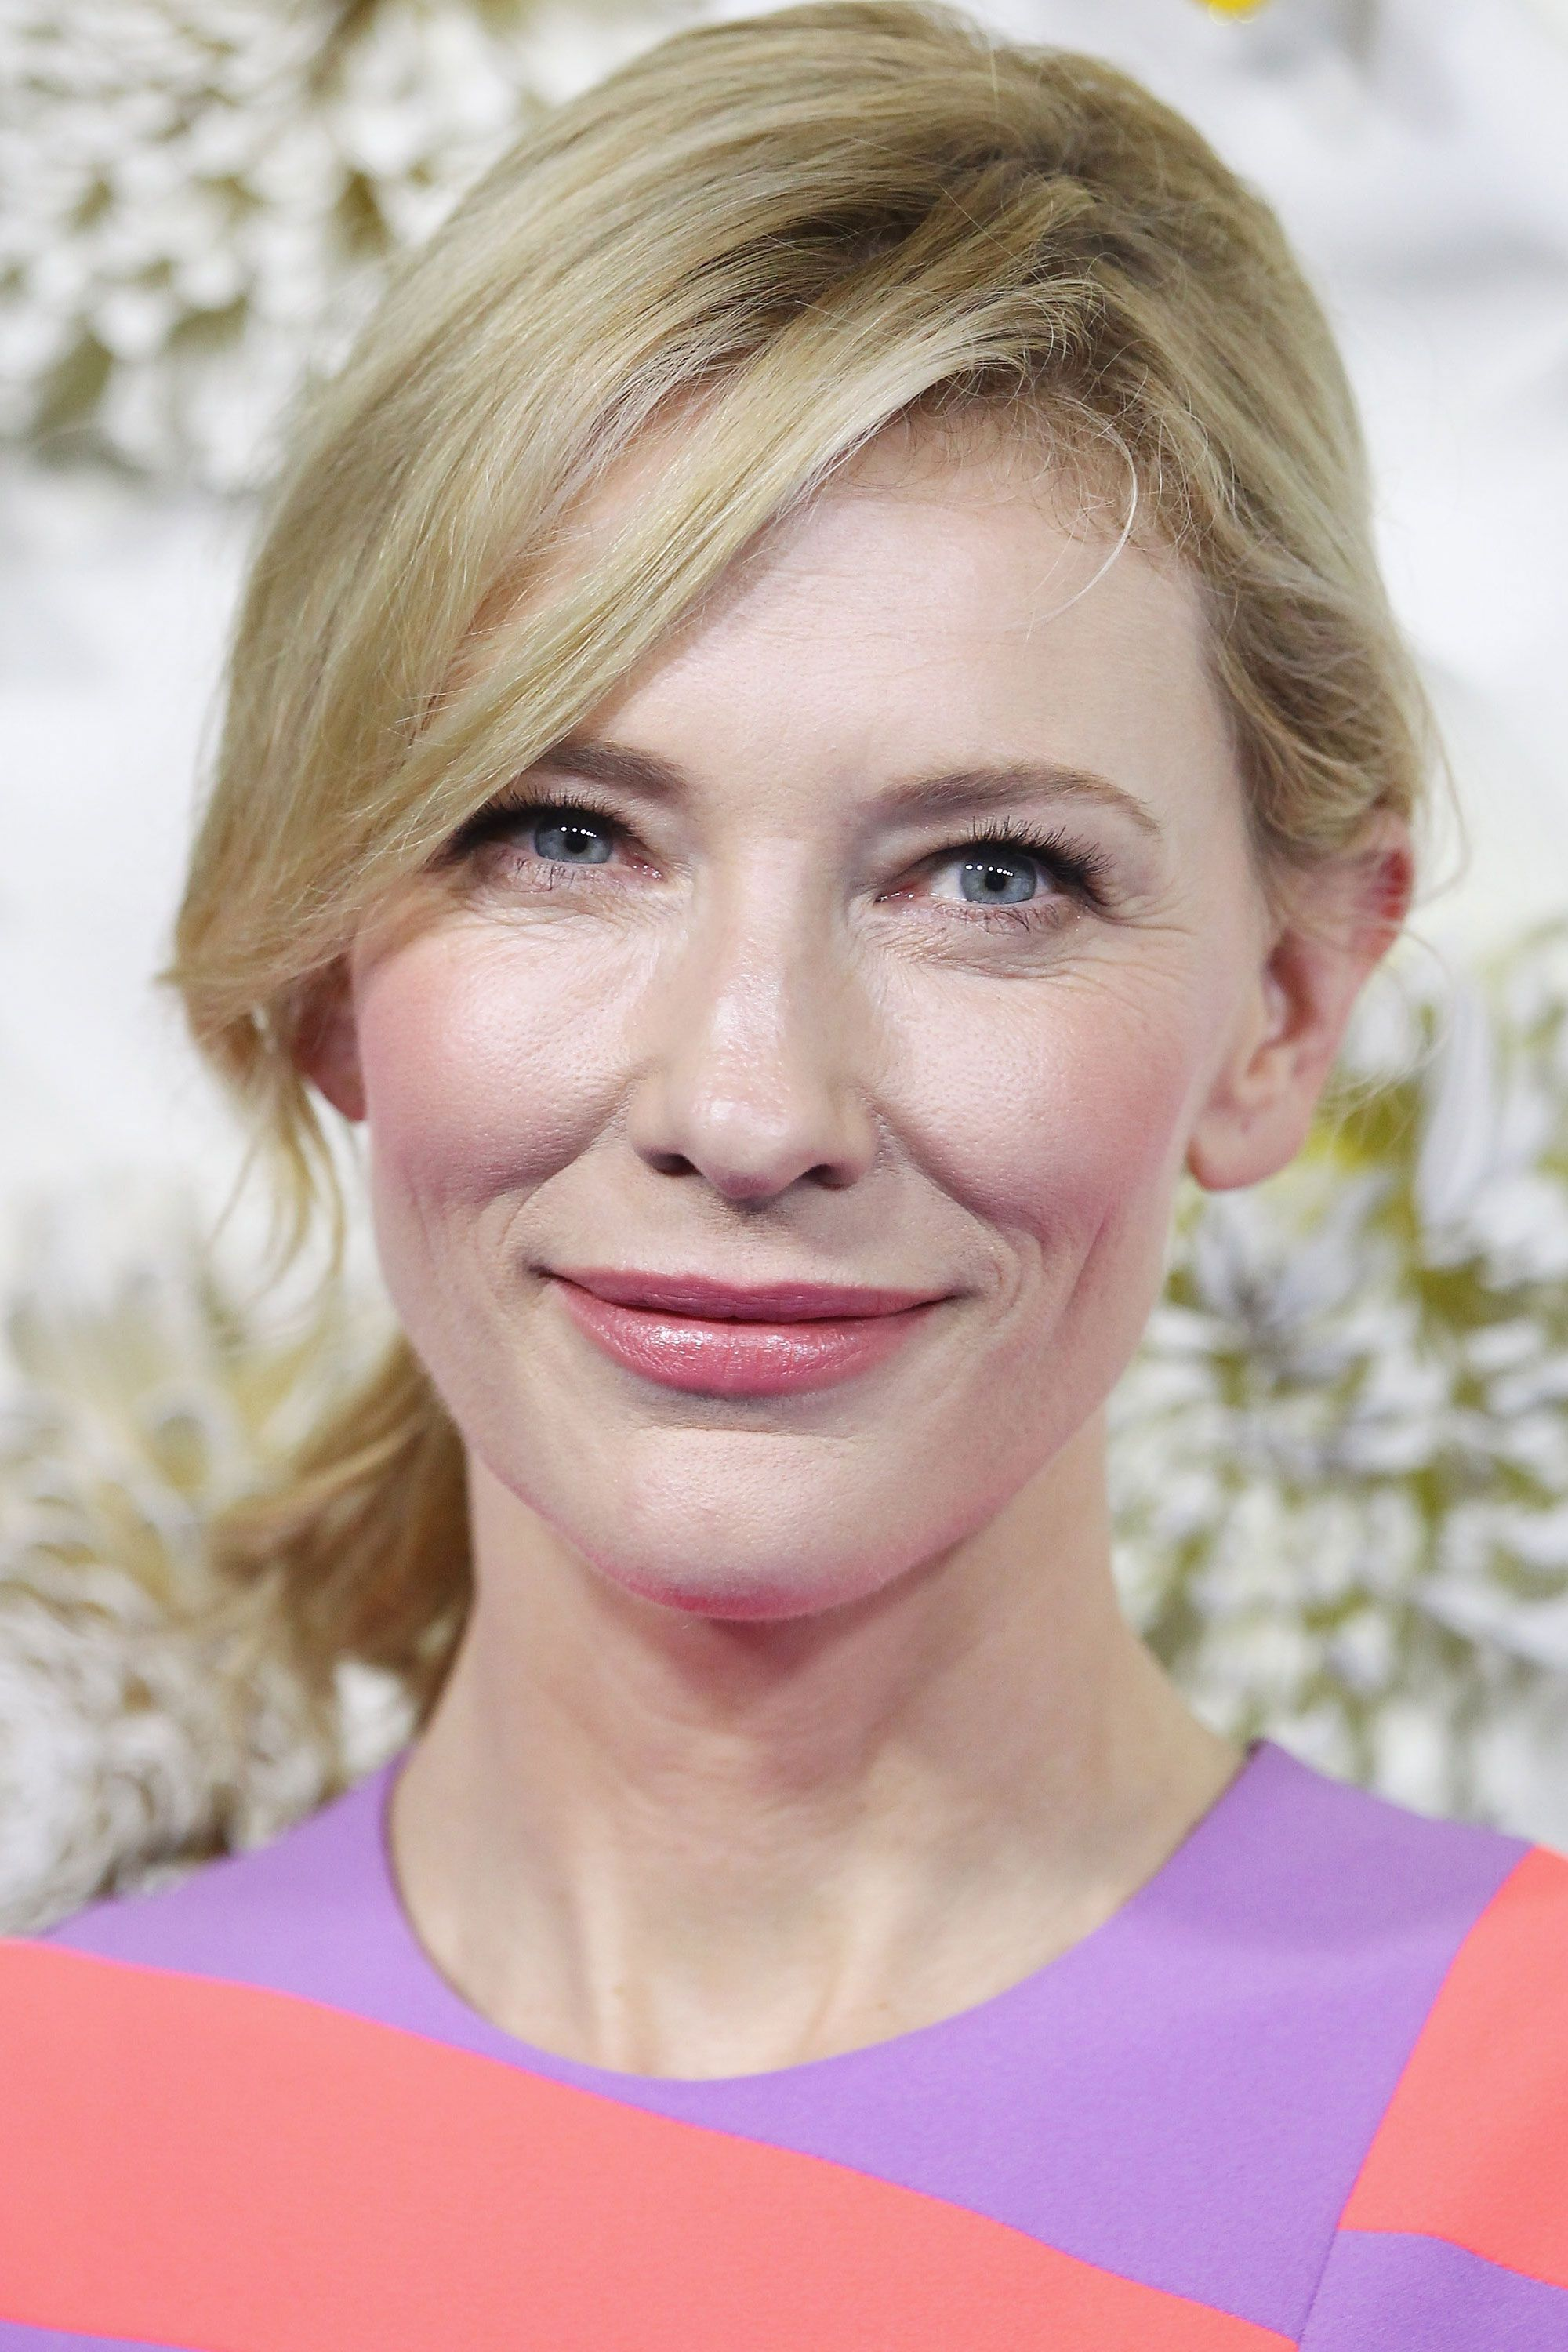 Blanchett is a breath of fresh air with her perky pink cheeks and petal-painted lips.